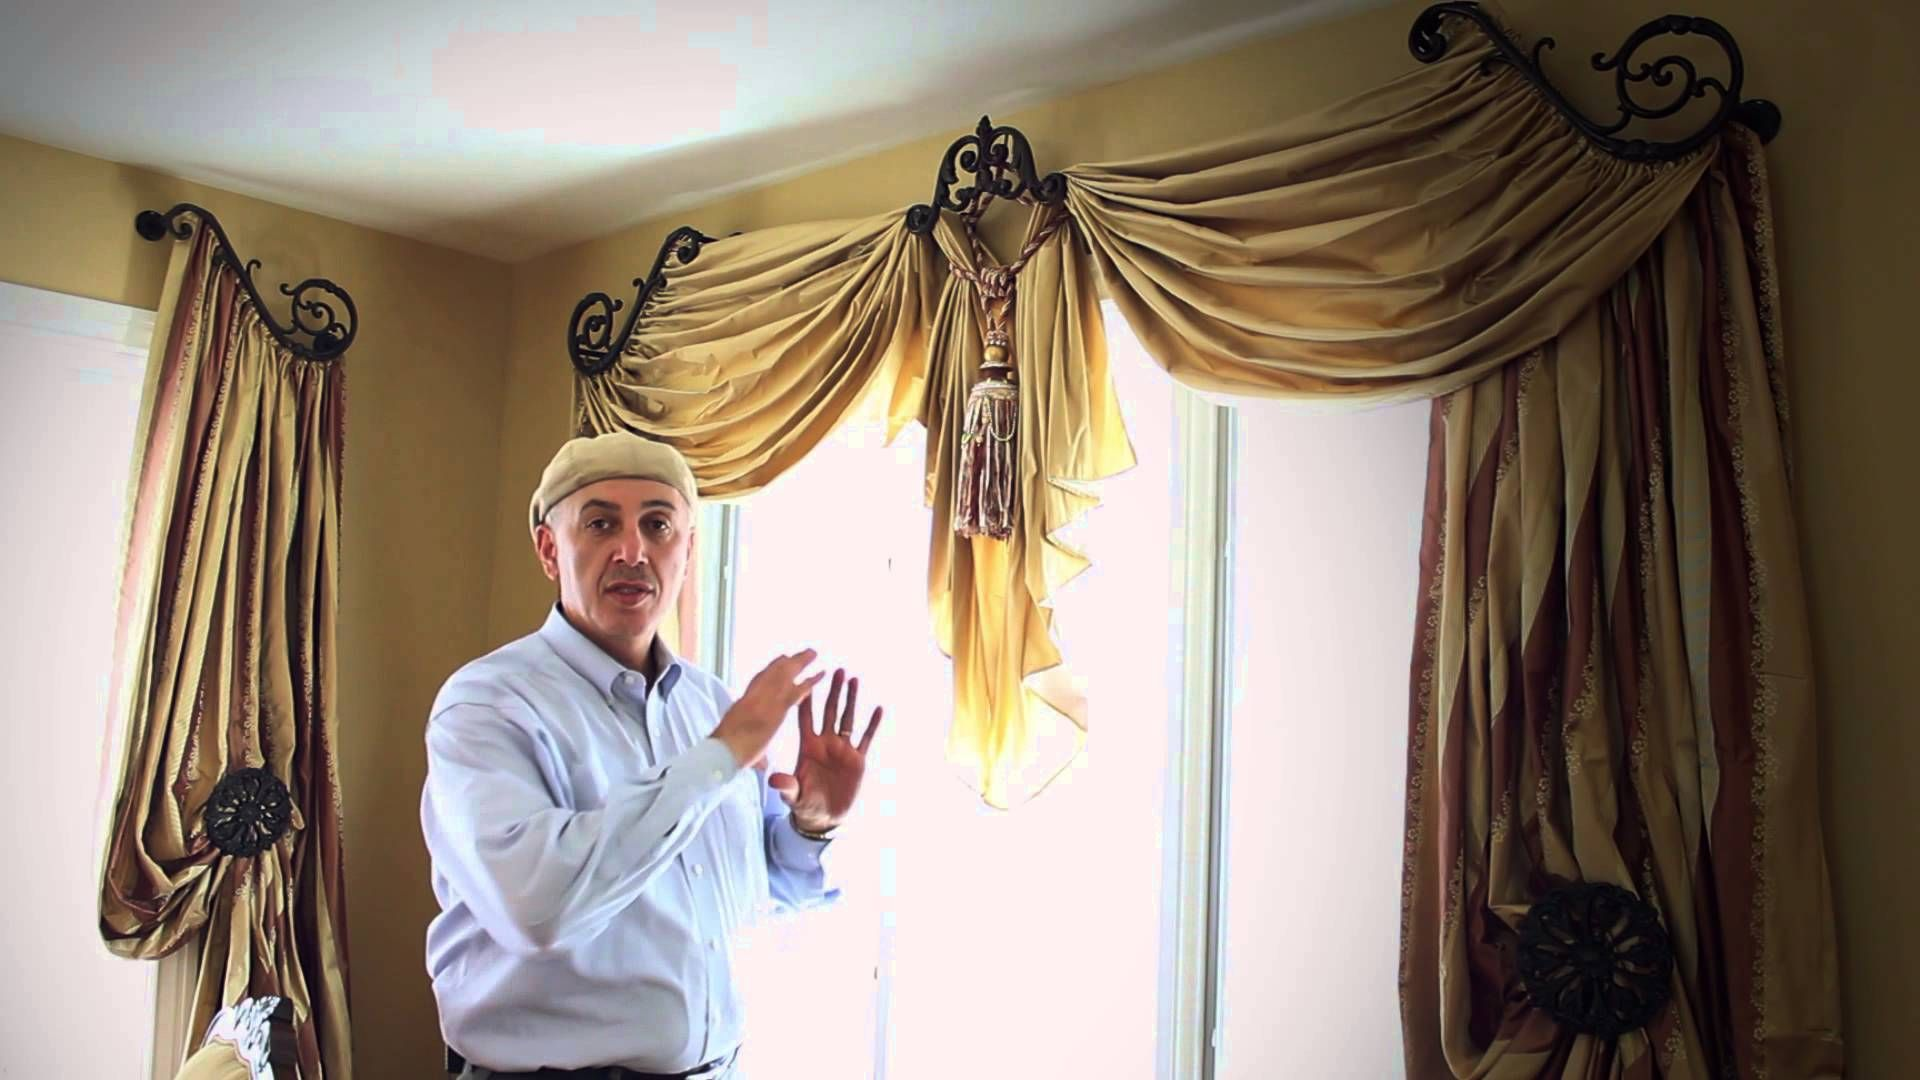 Video 34 do it yourself drapes window treatment ideas with video 34 do it yourself drapes window treatment ideas with solutioingenieria Gallery